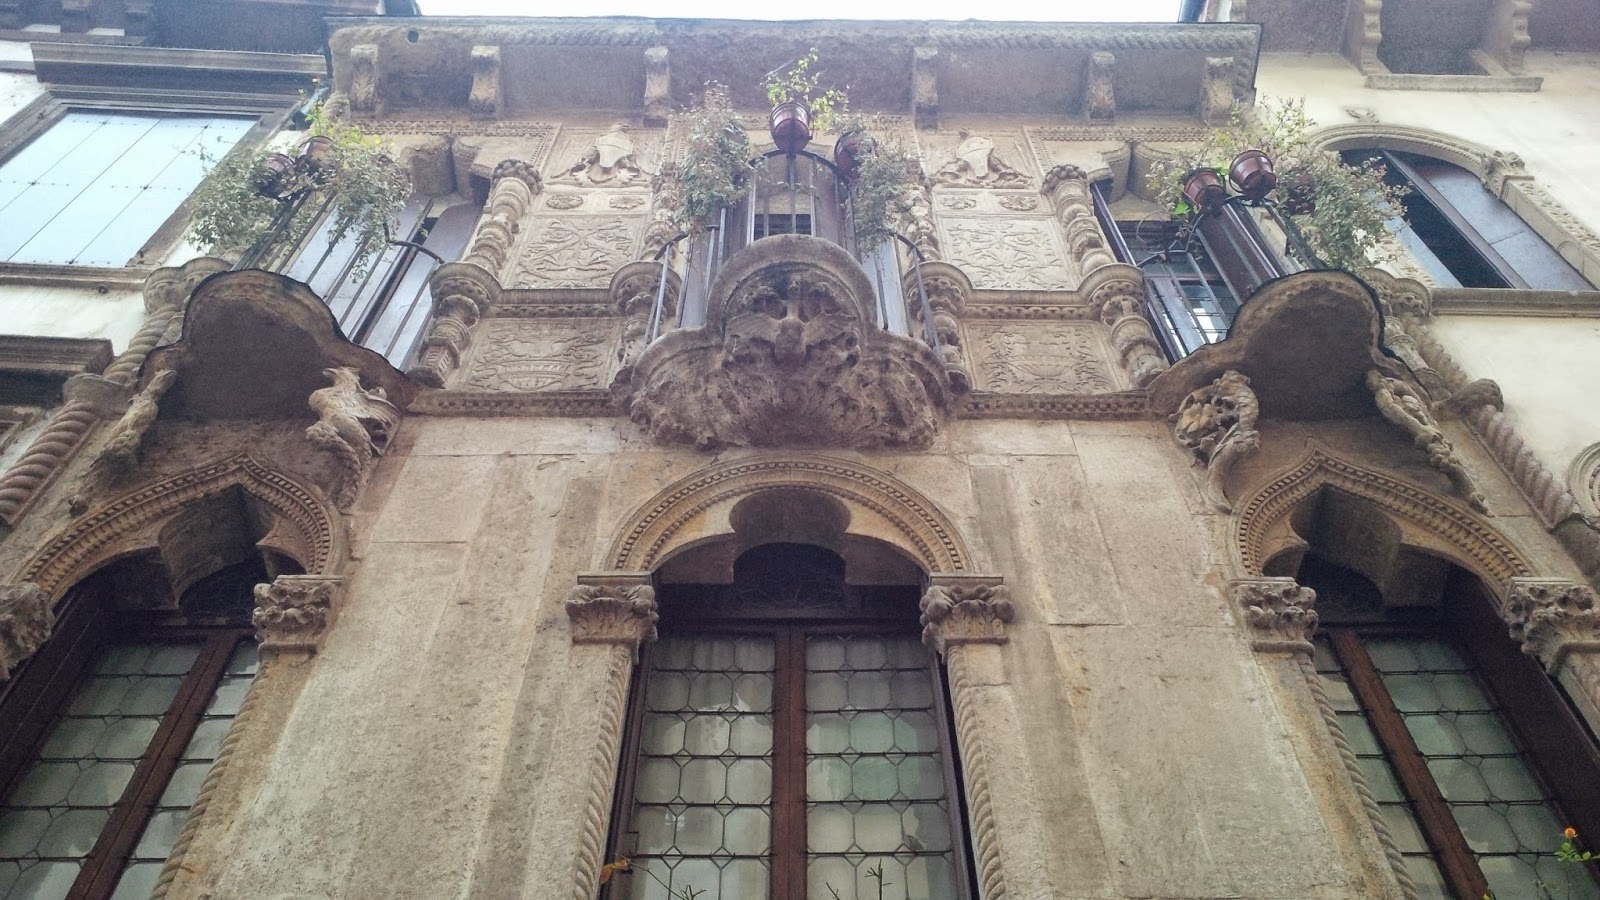 The Facade of Antonio Pigafetta's House in Vicenza